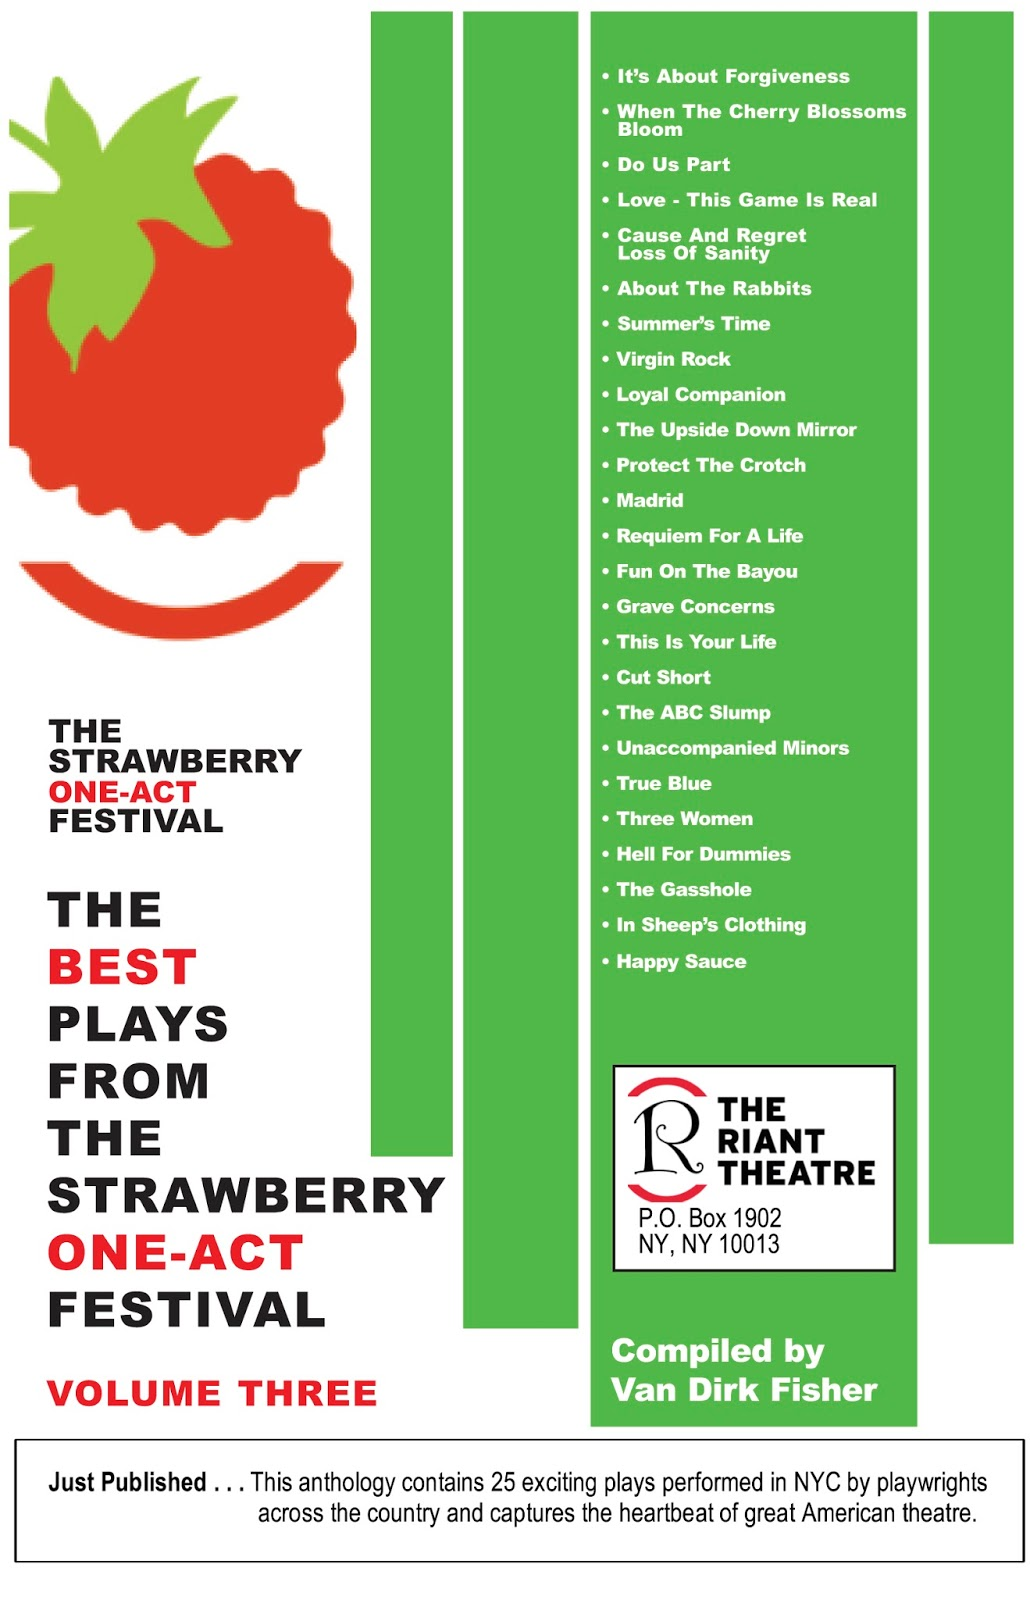 The Best Plays From The Strawberry One-Act Festival Volume 7